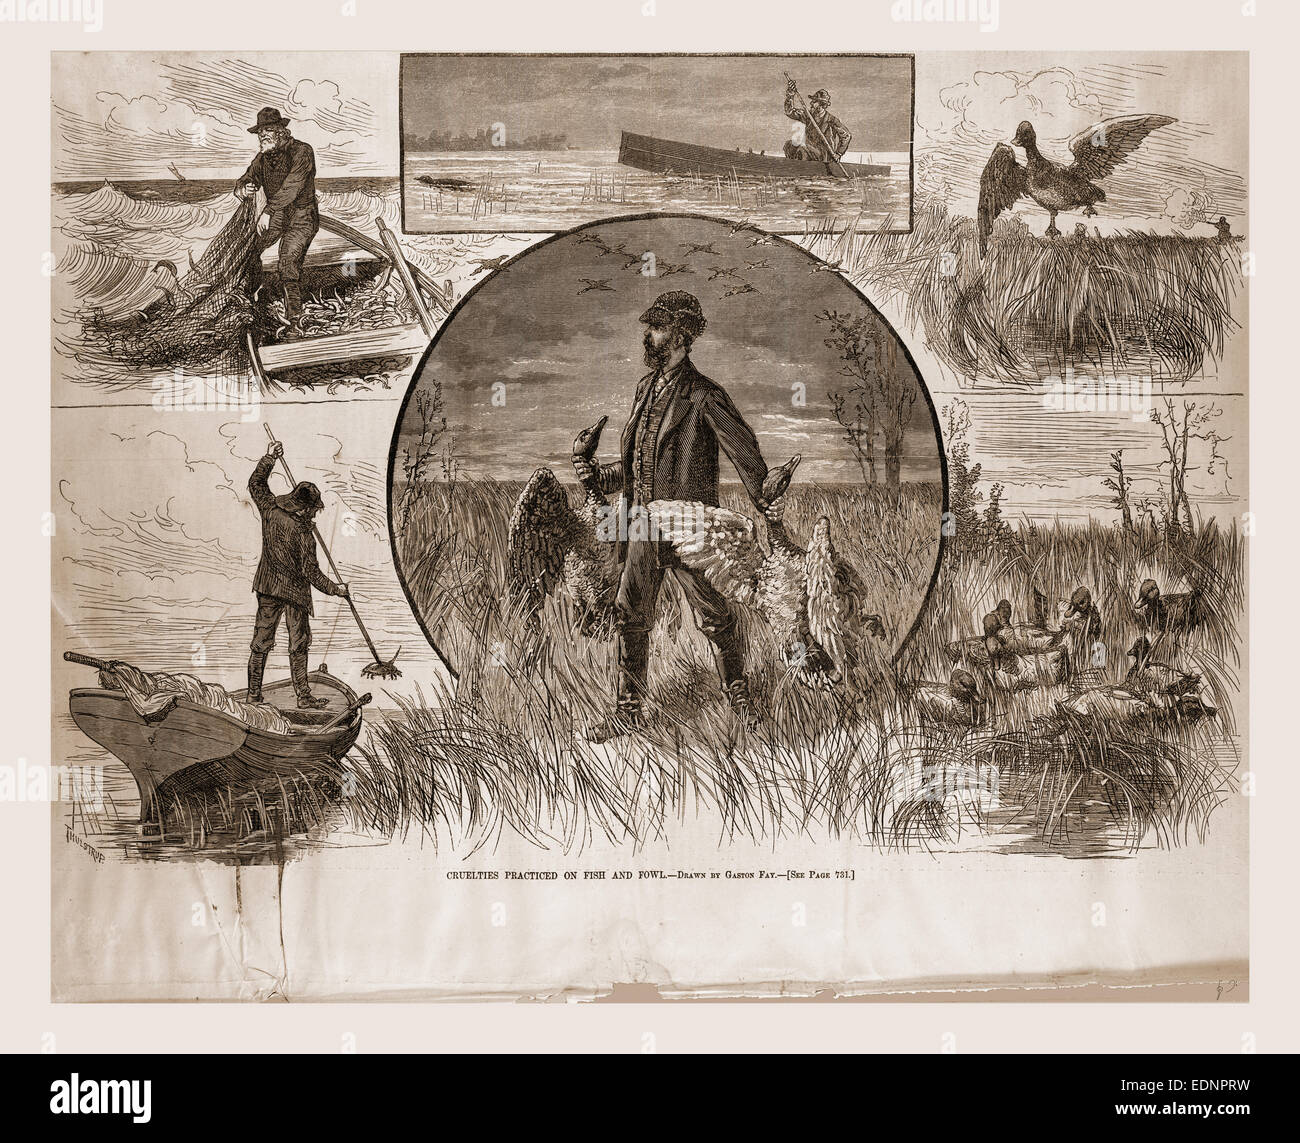 Cruelties practiced on Fish and Fowl, 1880, 19th century engraving, USA, America - Stock Image